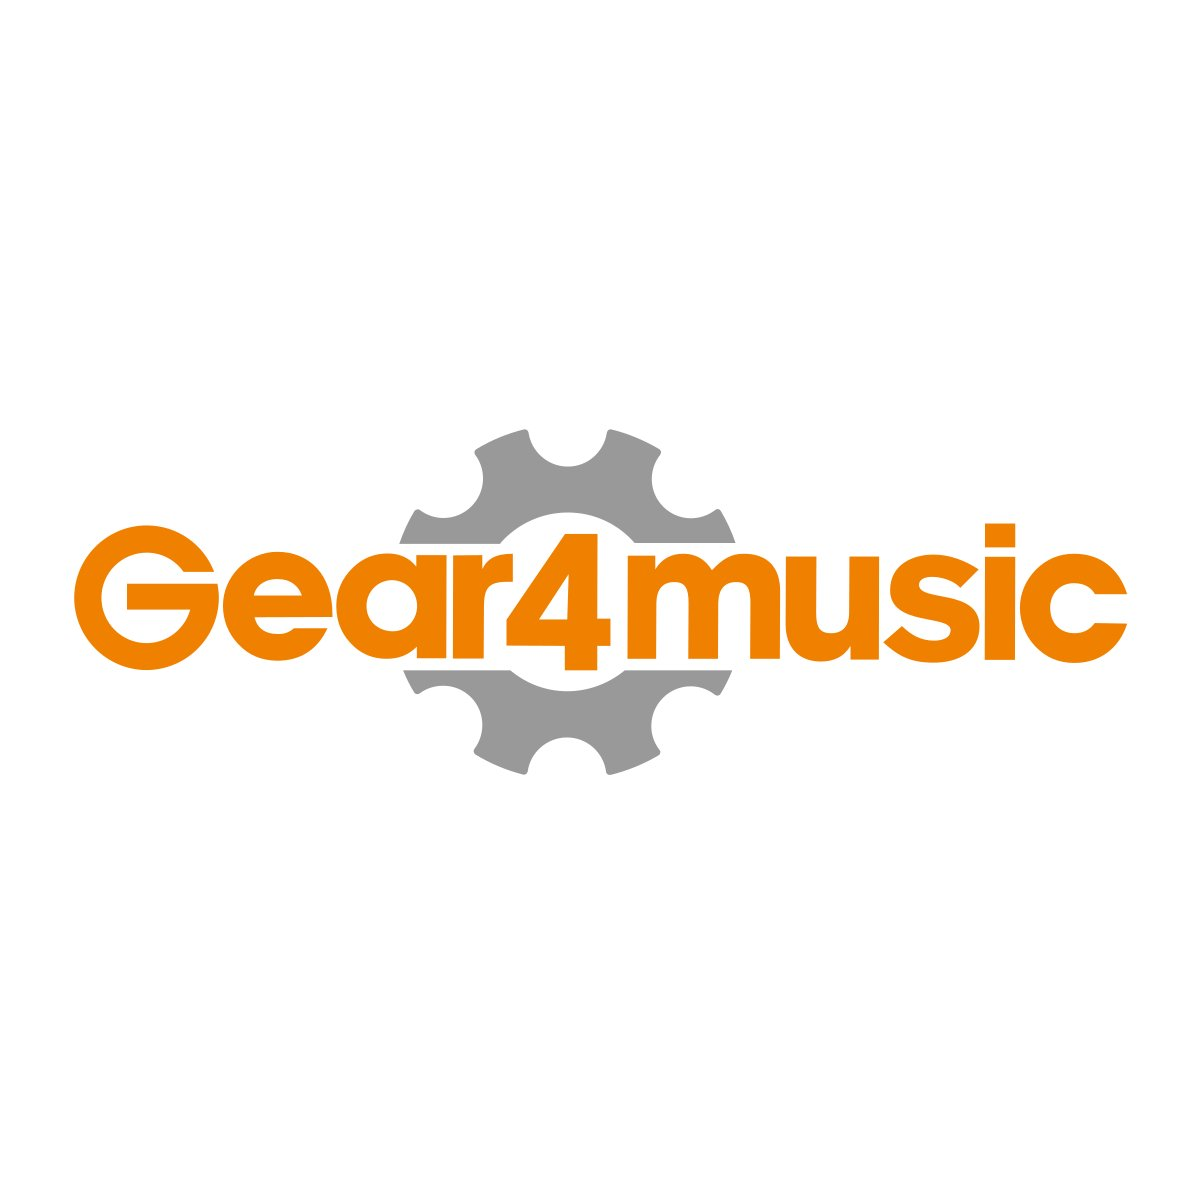 GDP-100 Gear4music - Piano de Cauda Digital